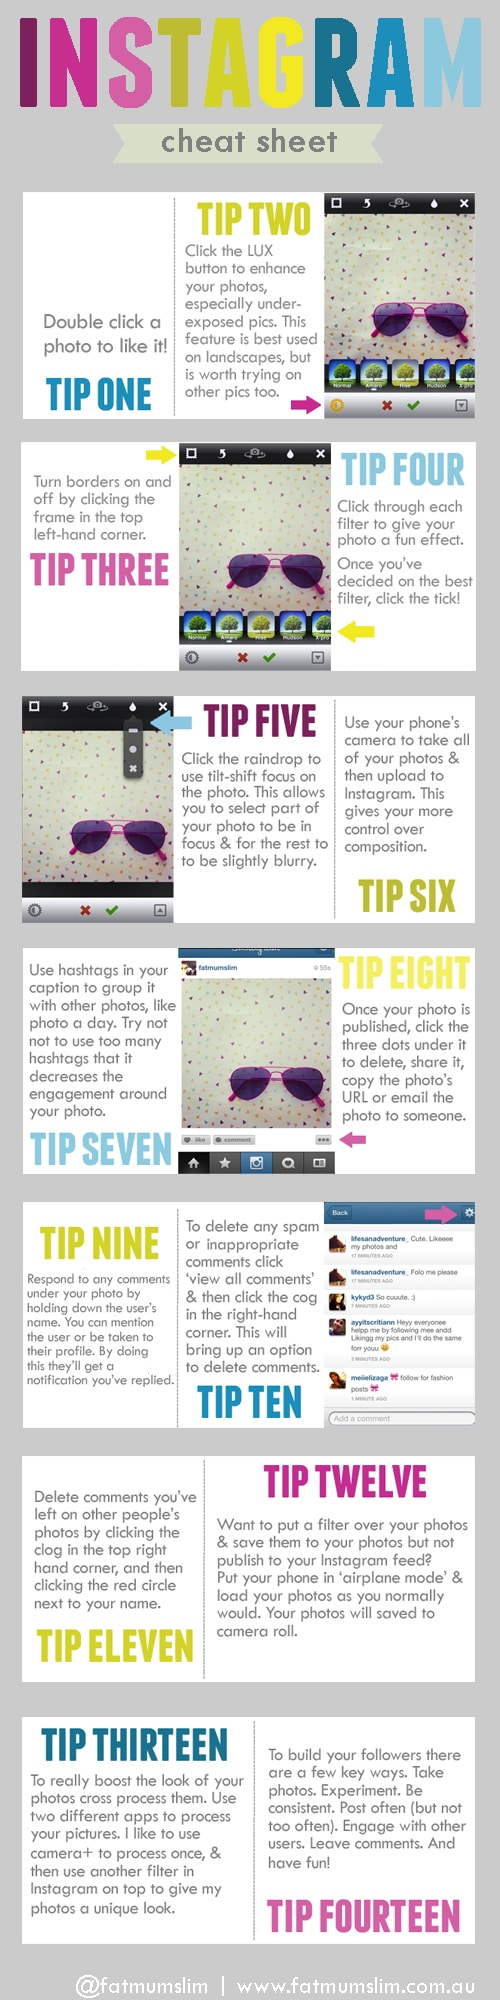 Instagram Cheat Sheet: 14 Tips To Master It All [Infographic]